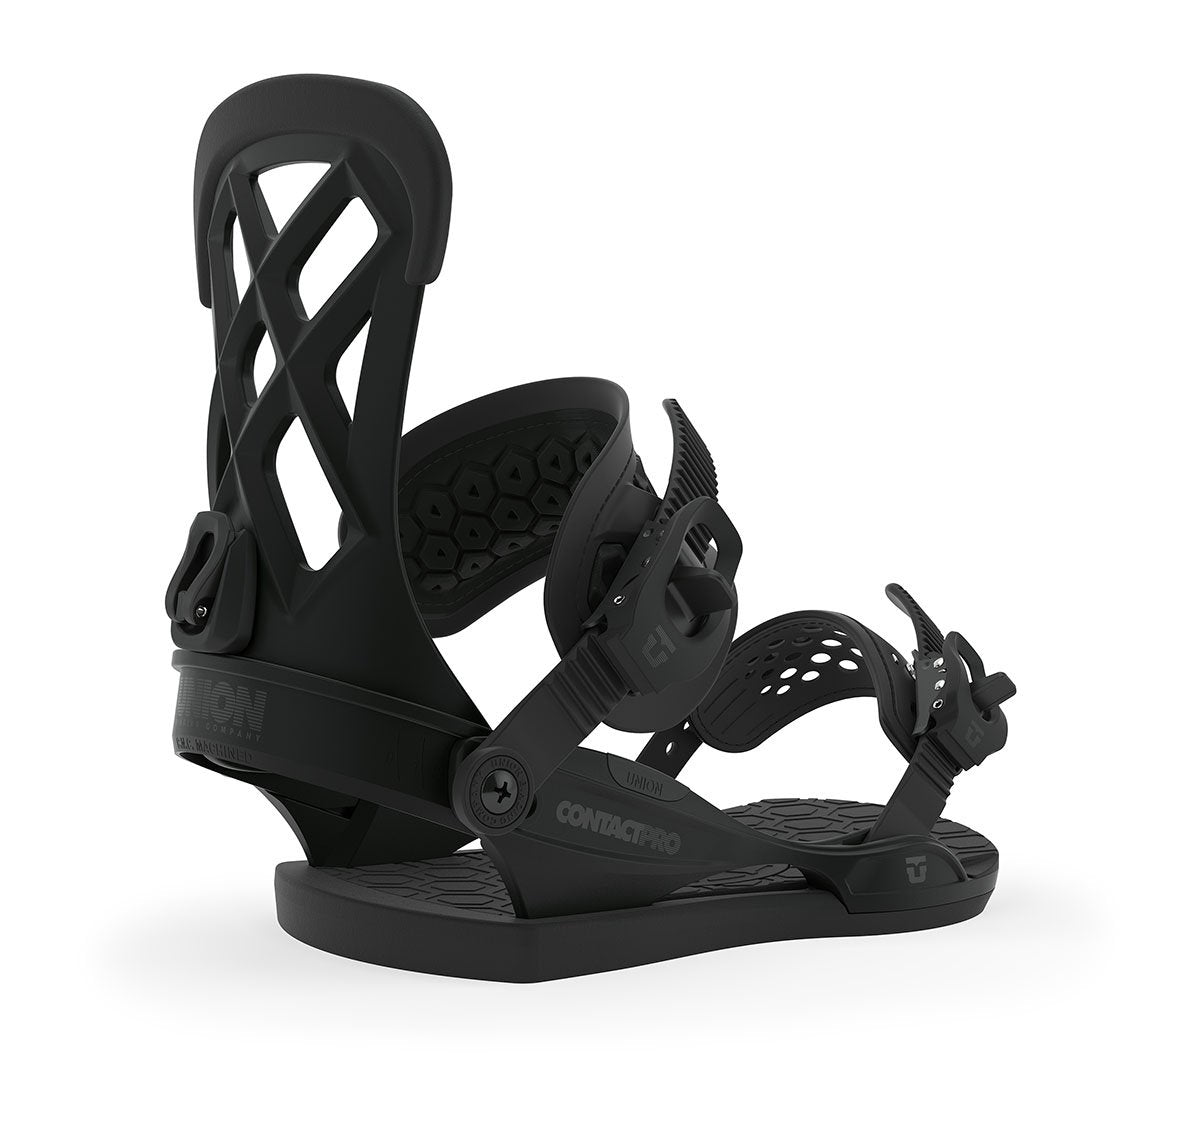 Union Contact Pro Snowboardbinding 2020